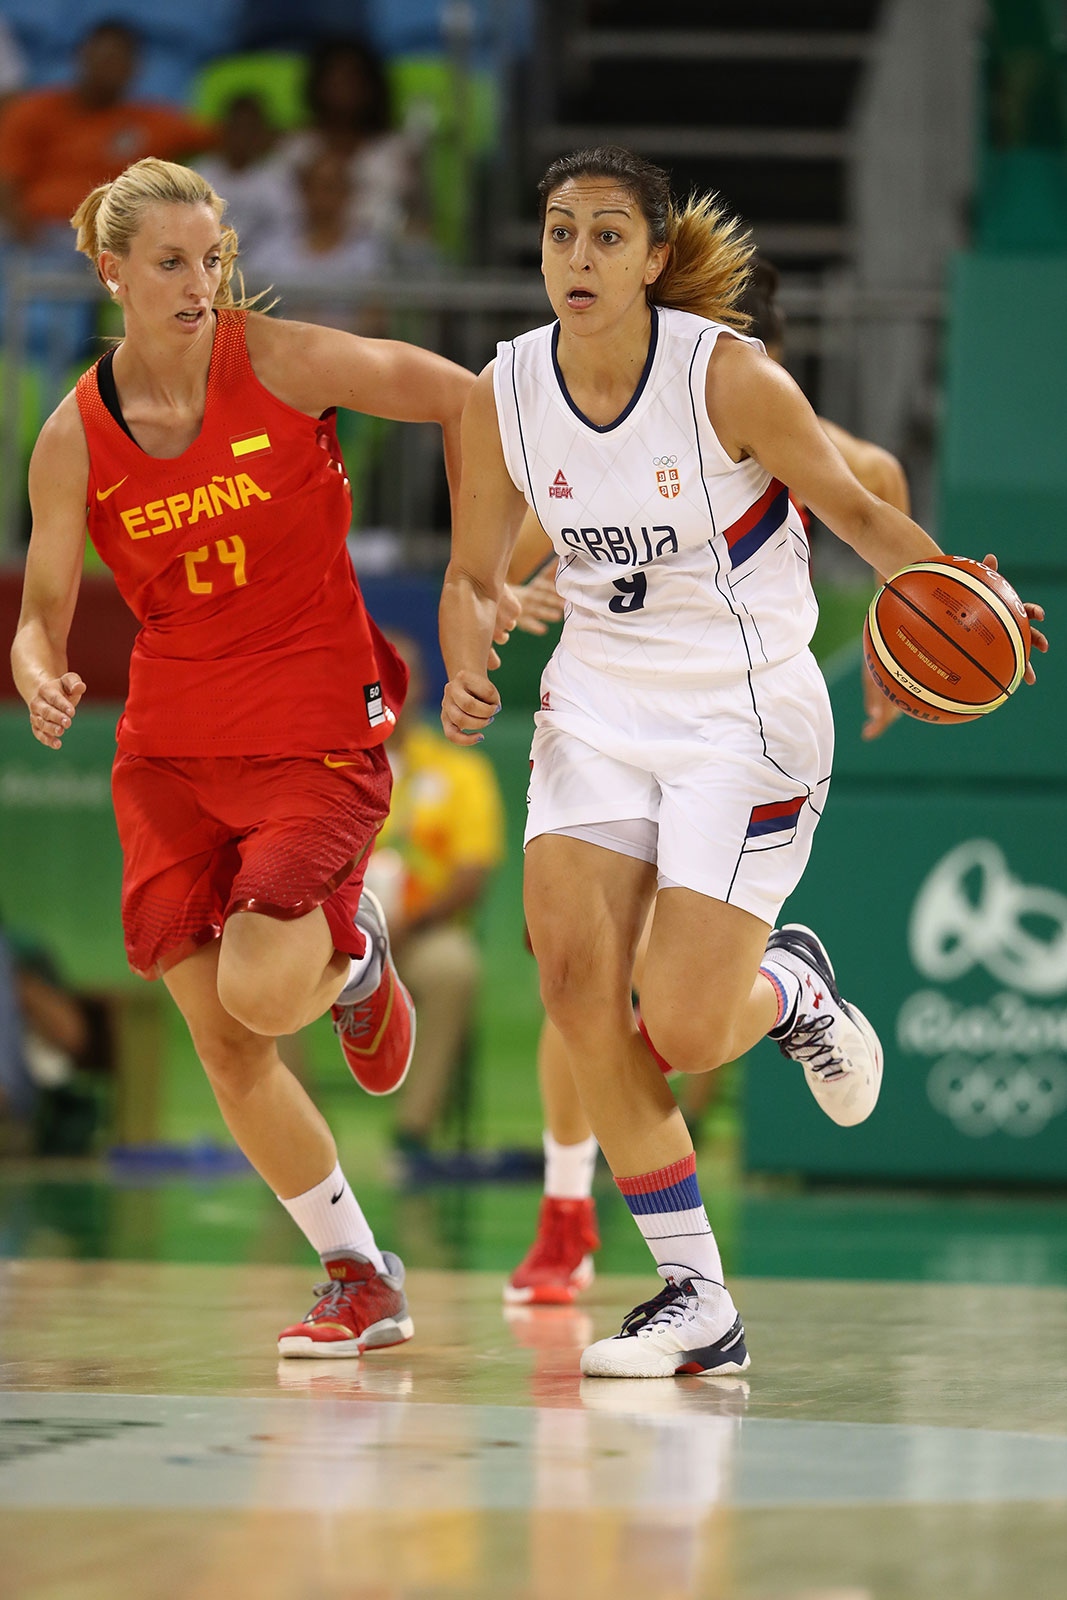 Women's Basketball - Preliminary Round - Group B